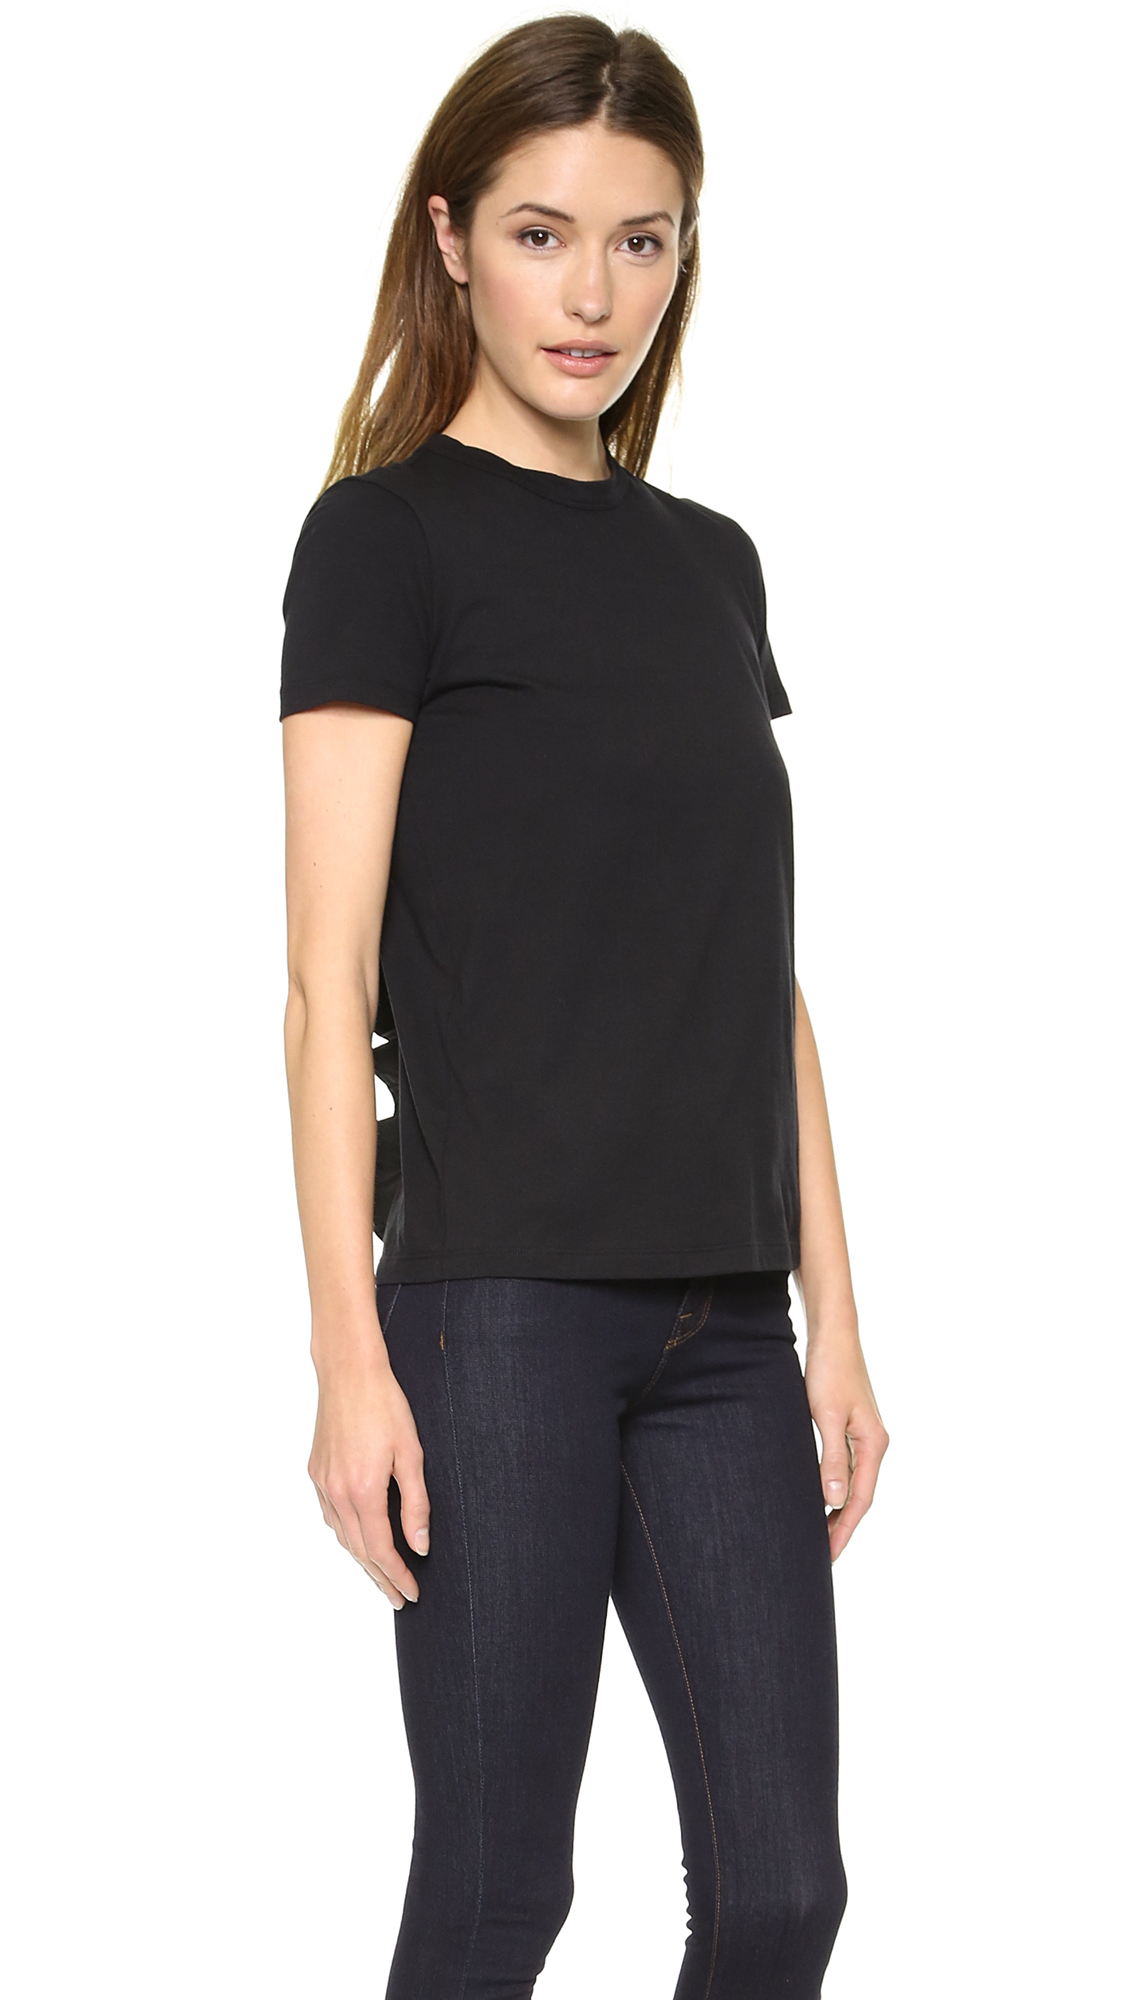 Red Valentino Spring 2016: Red Valentino Ruffle Back Tee Black In Black